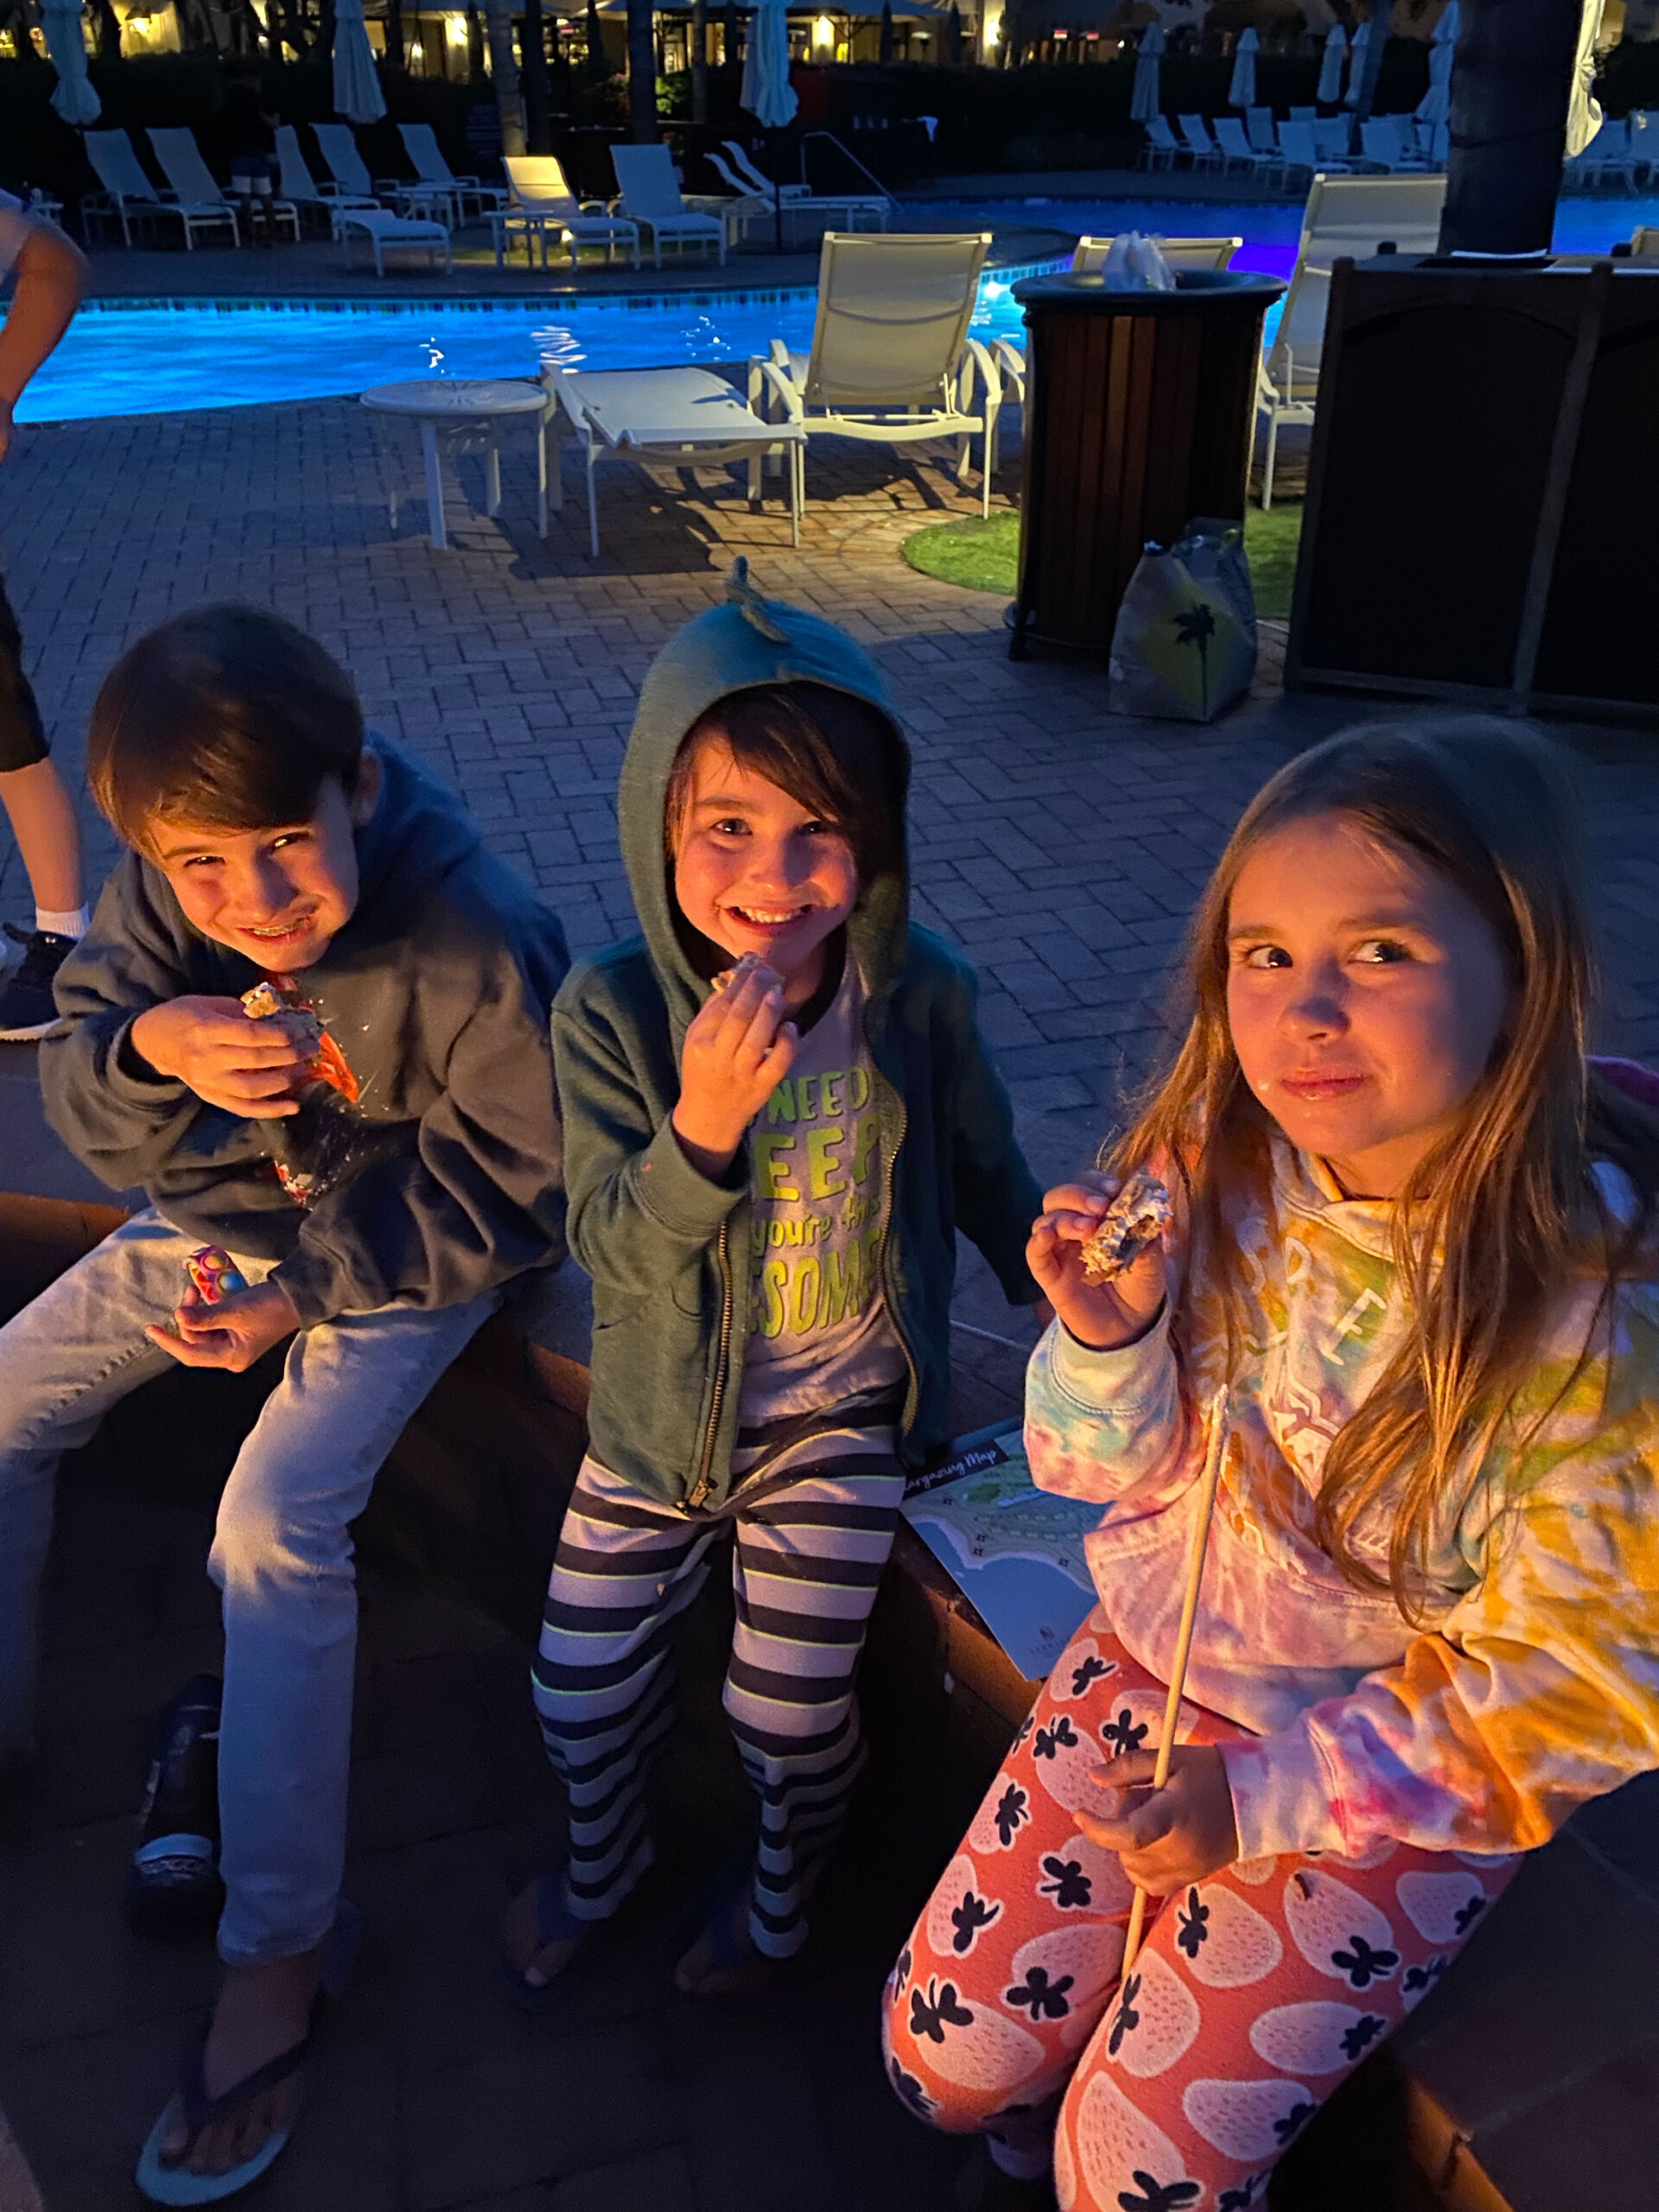 late summer nights staying up for smores by the fire #thelovedesignedlife #theldltravels #smores #bettersleephabits